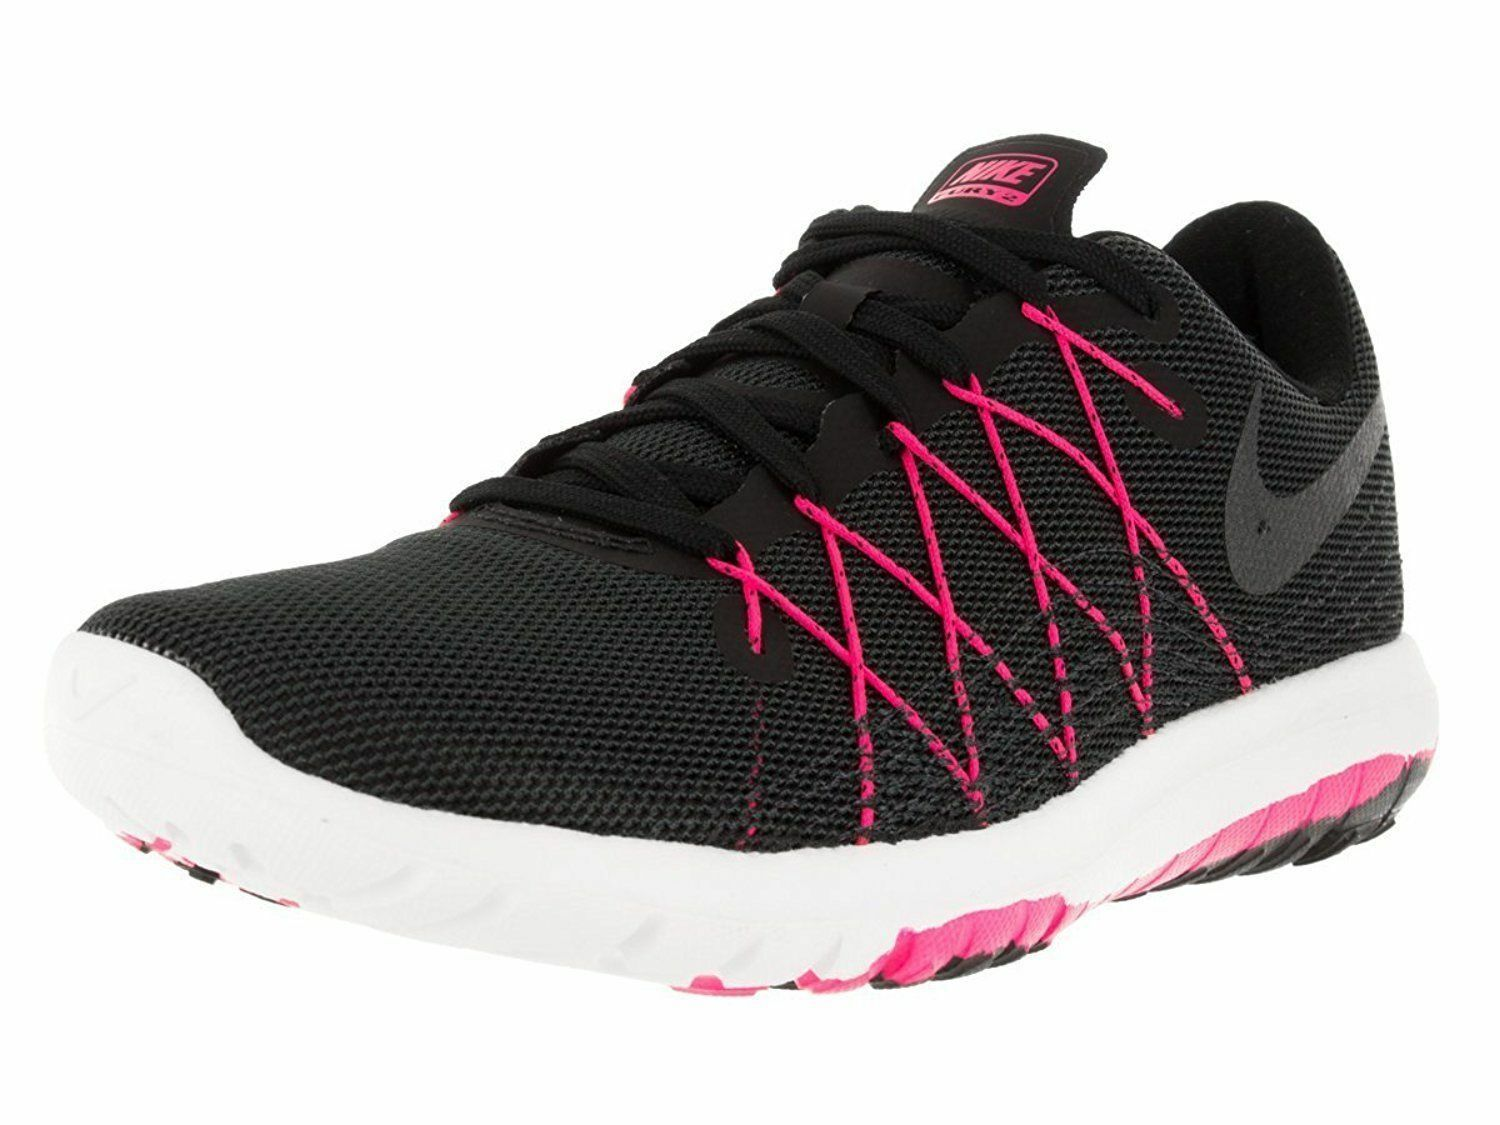 NIKE FLEX FURY 2 LOW RUNNING SNEAKERS WOMEN SHOES 19135-003 SIZE 10 NEW